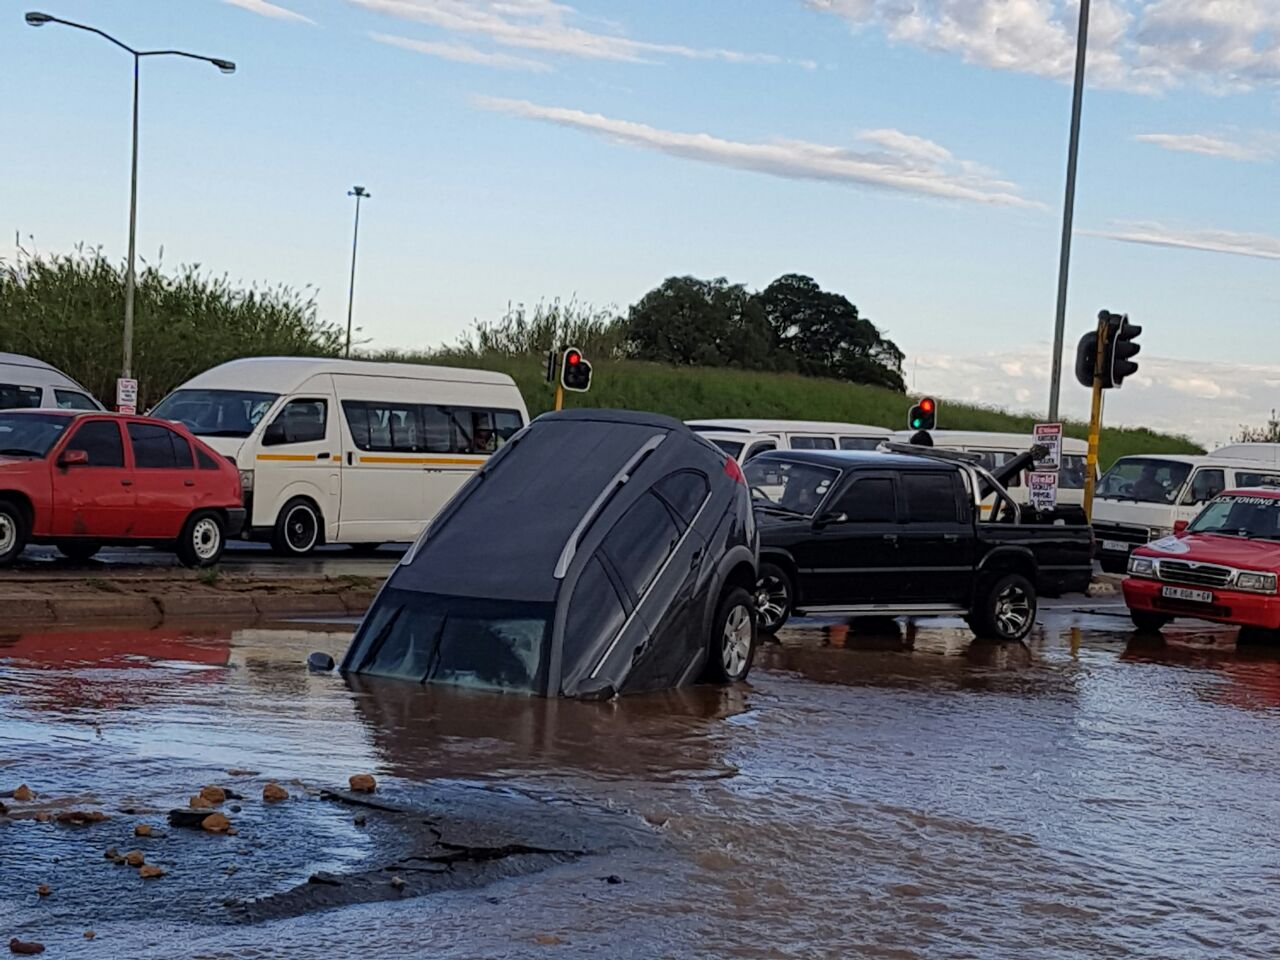 The car which took a nose dive into the hole on Zuurfontein Road. Picture: Brenda Short